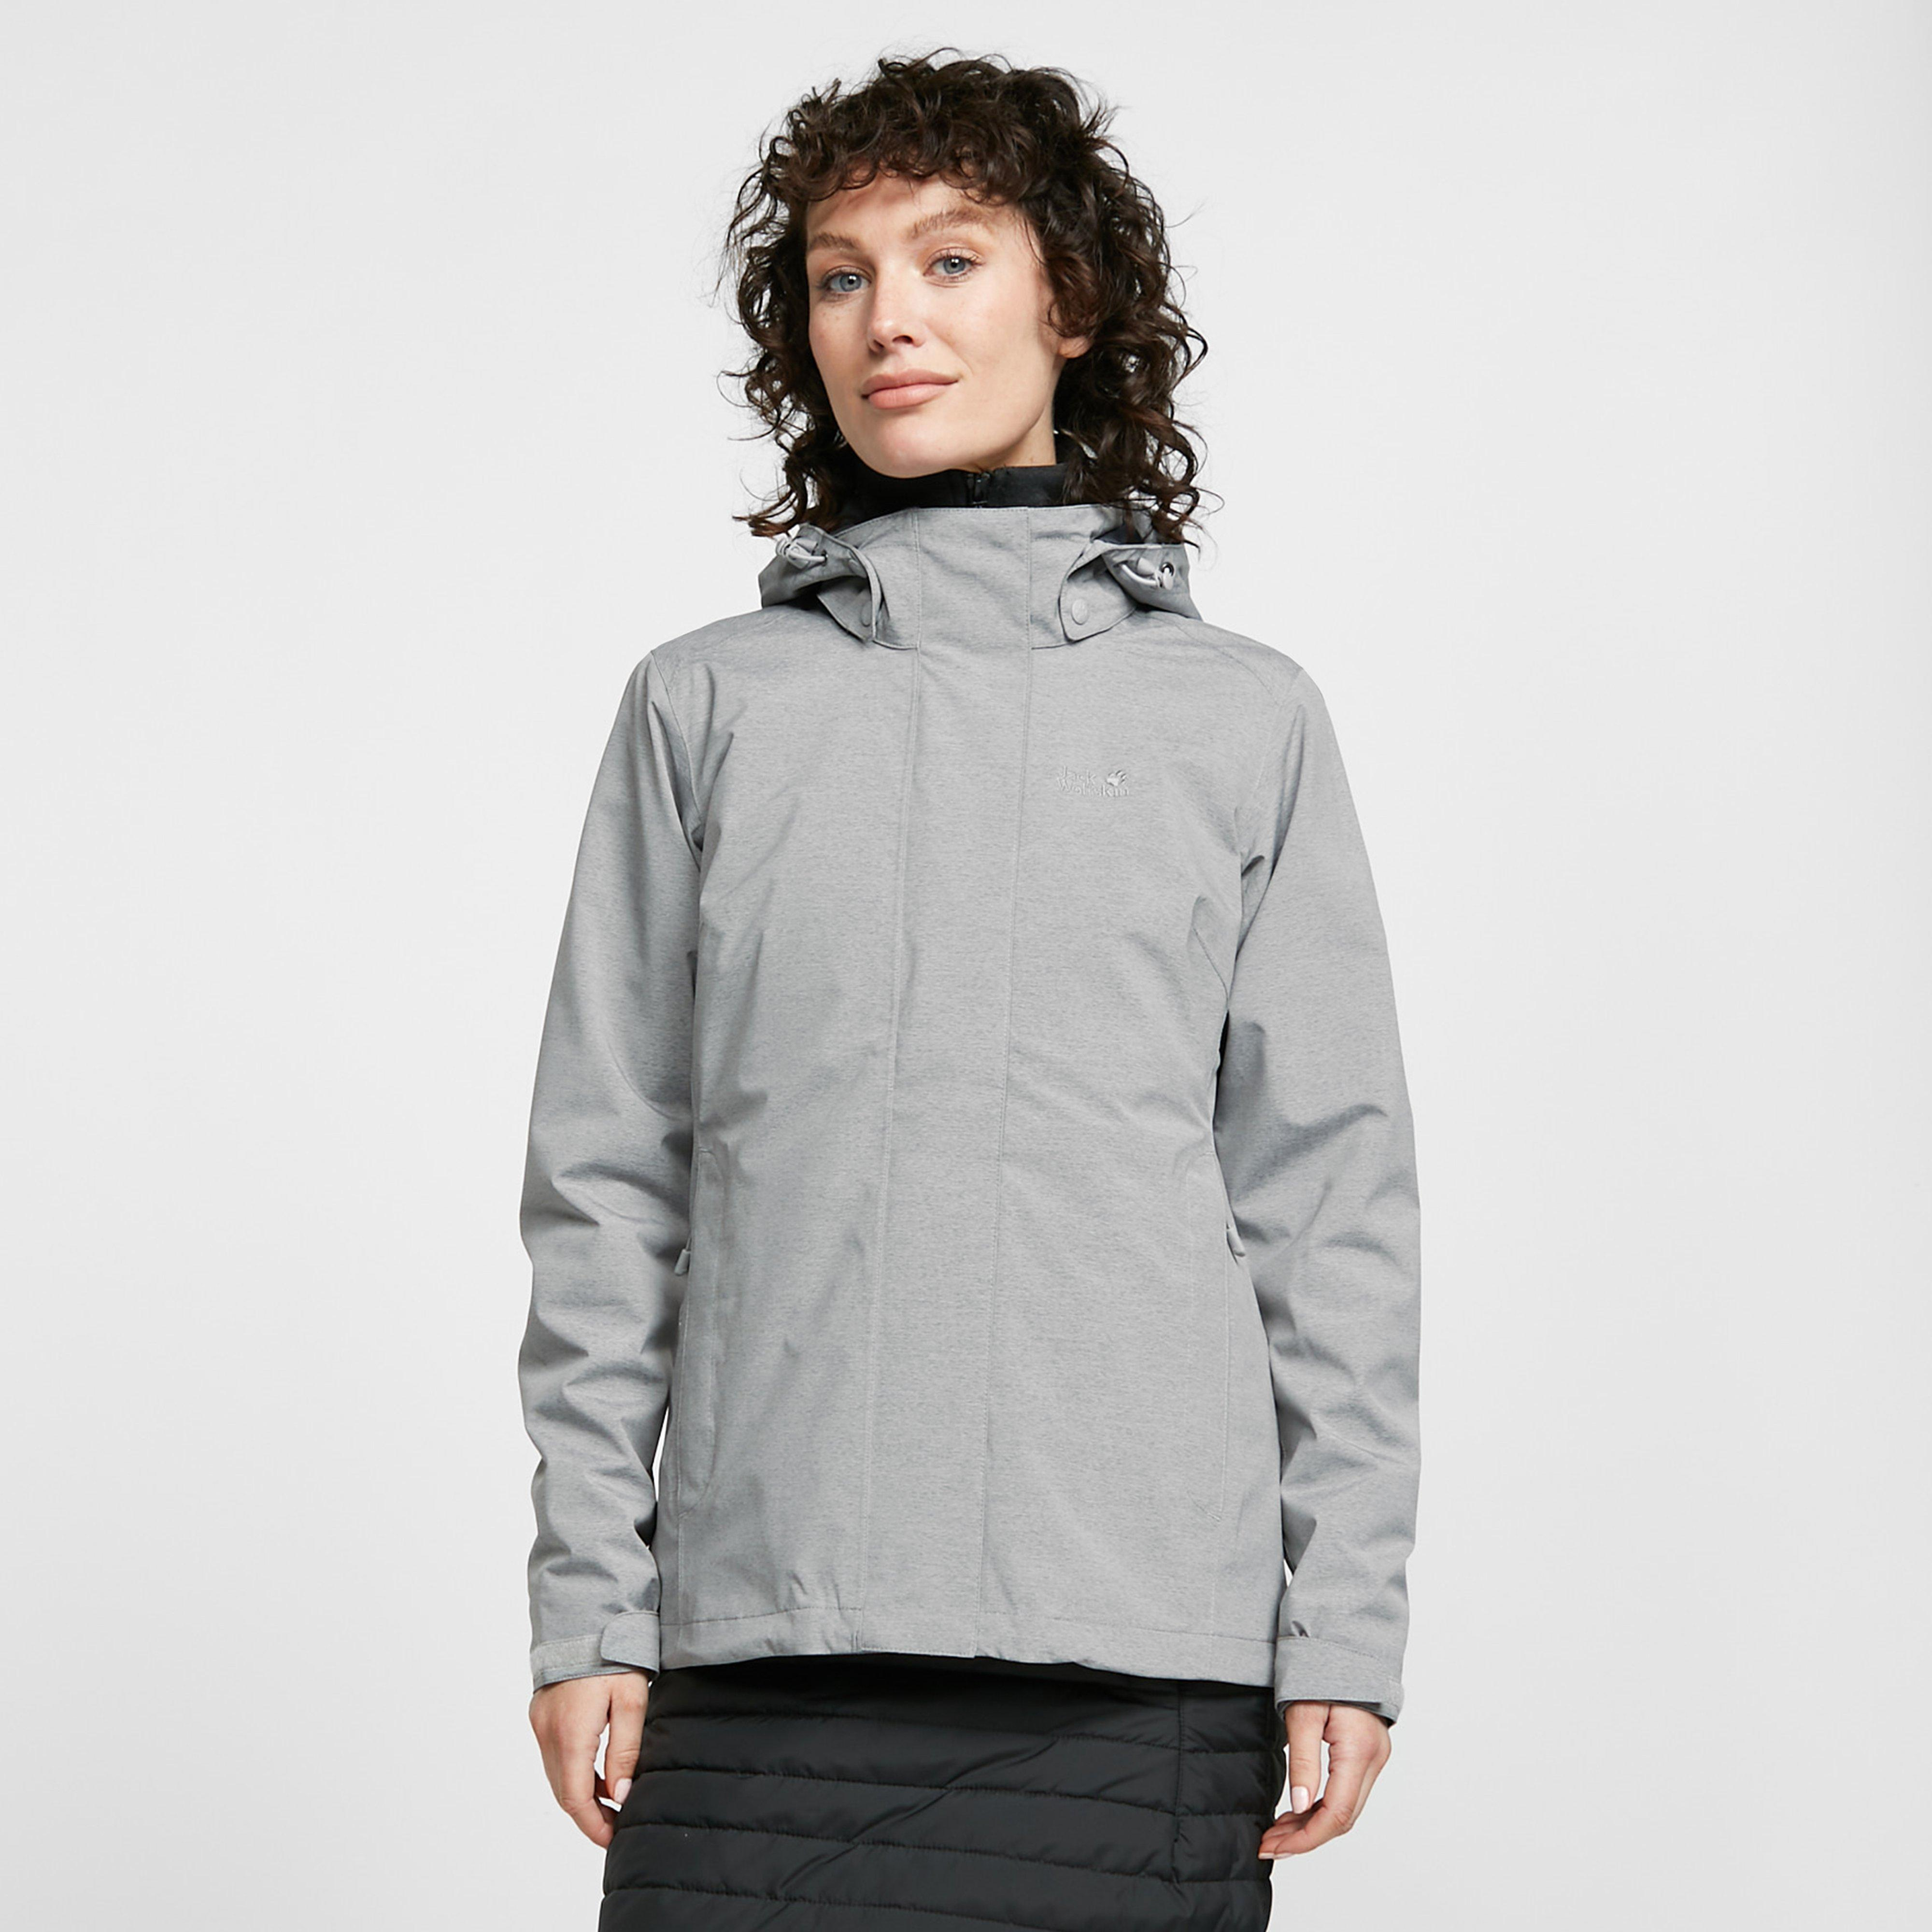 Jack Wolfskin Women's Paradise Valley Jacket, Grey